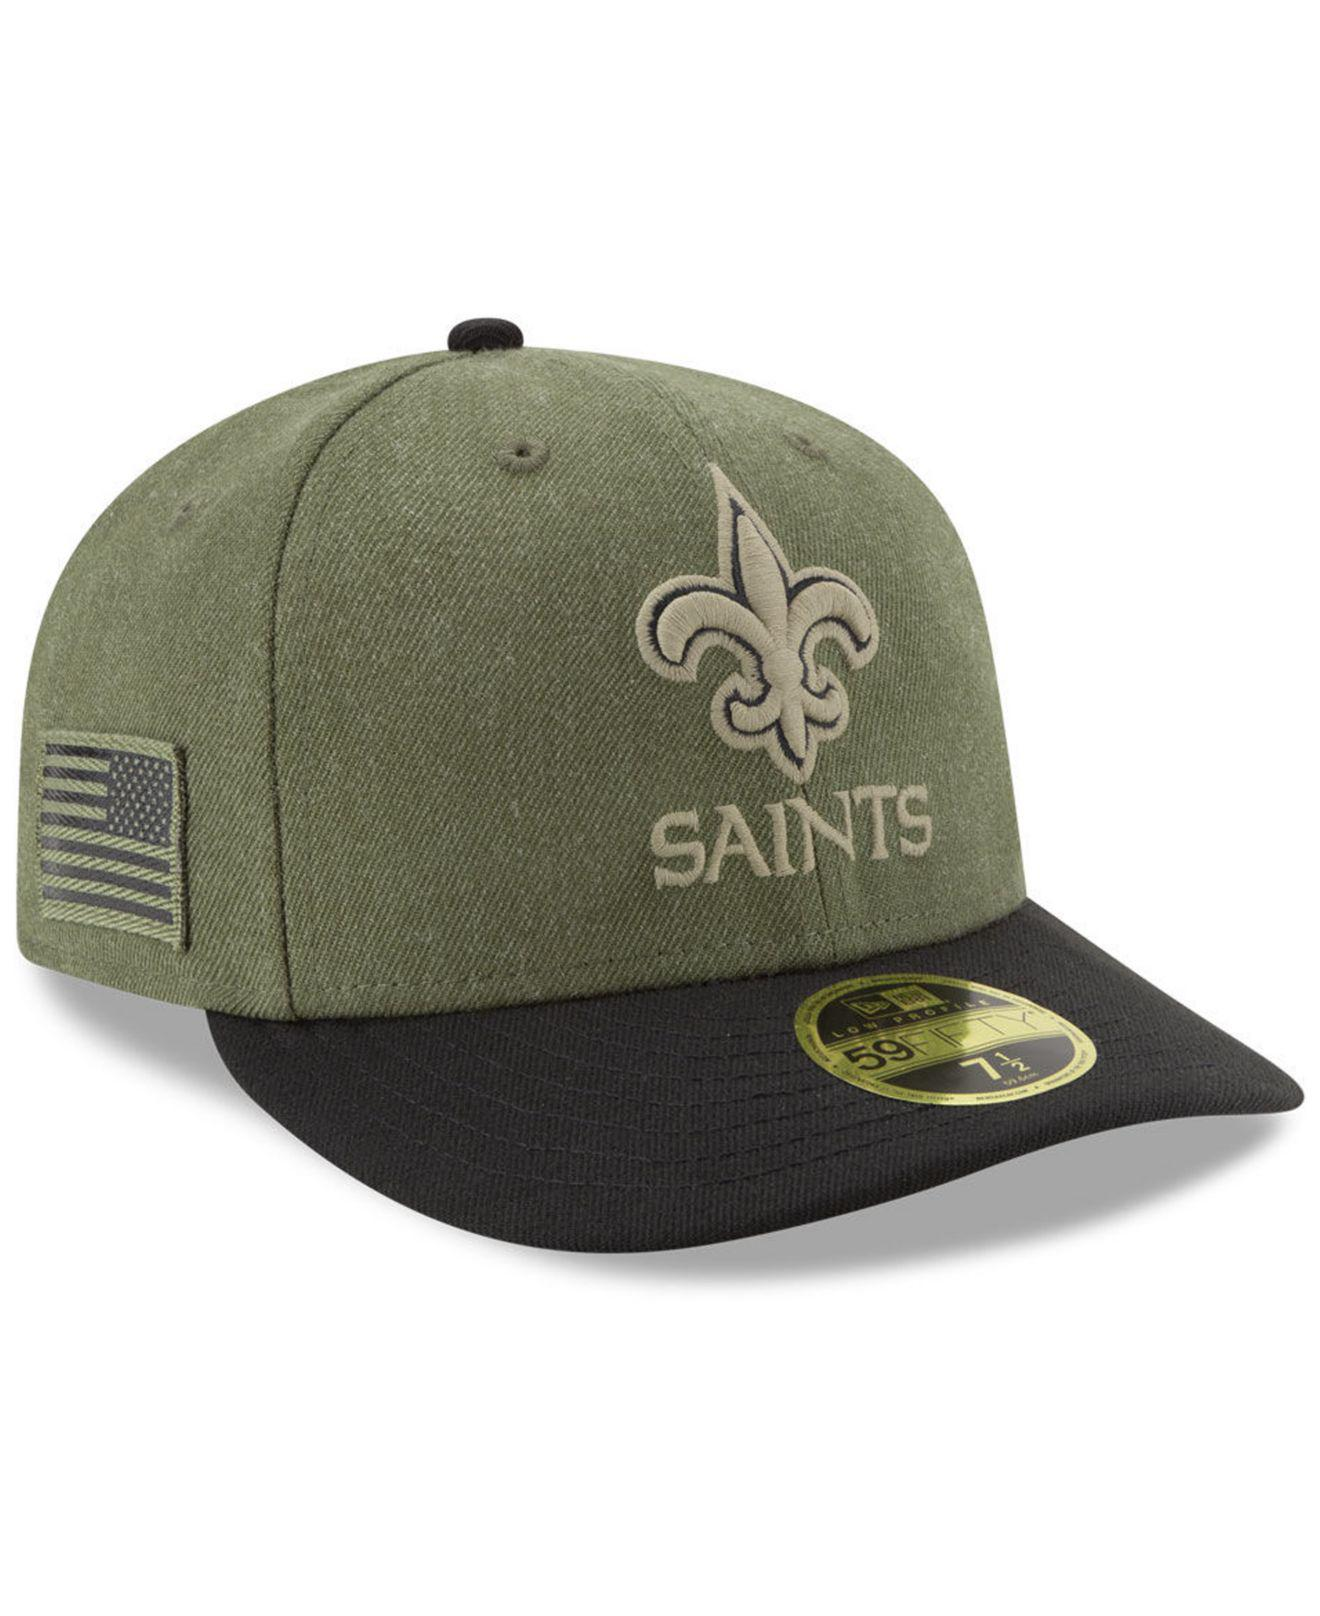 5eff1cbb076 KTZ New Orleans Saints Salute To Service Low Profile 59fifty Fitted ...